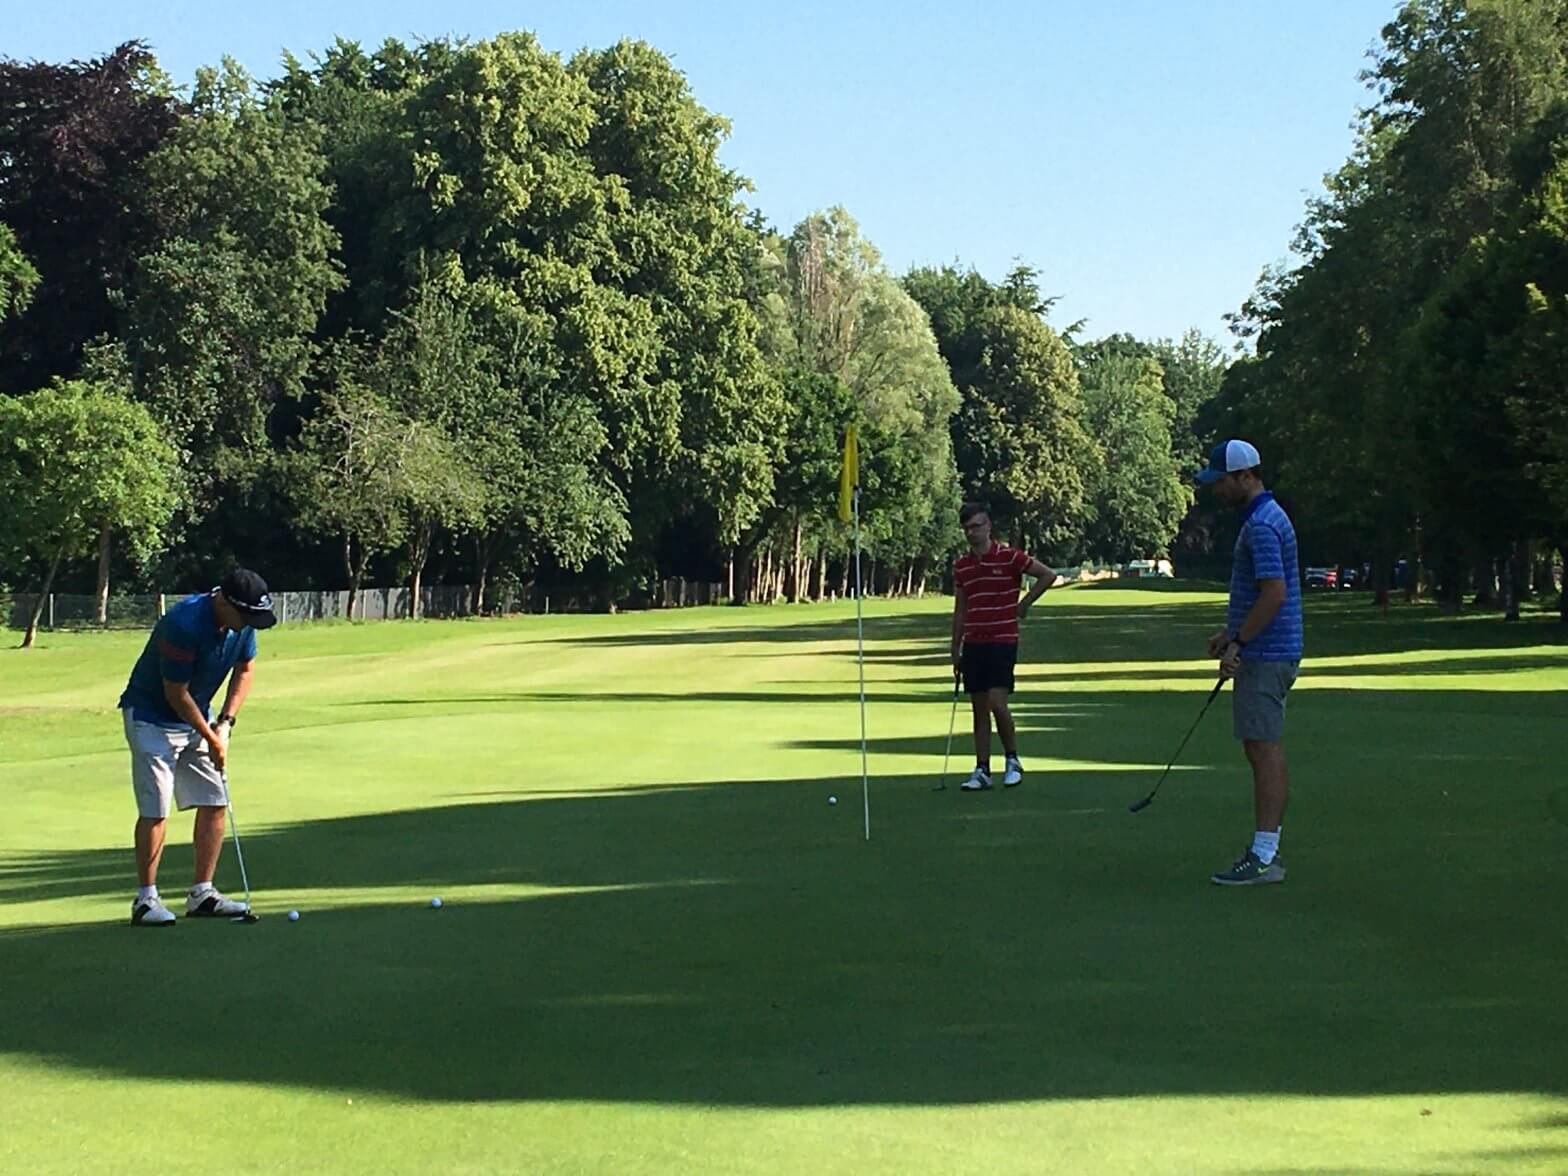 Three men on the green at Walton Hall Golf Course